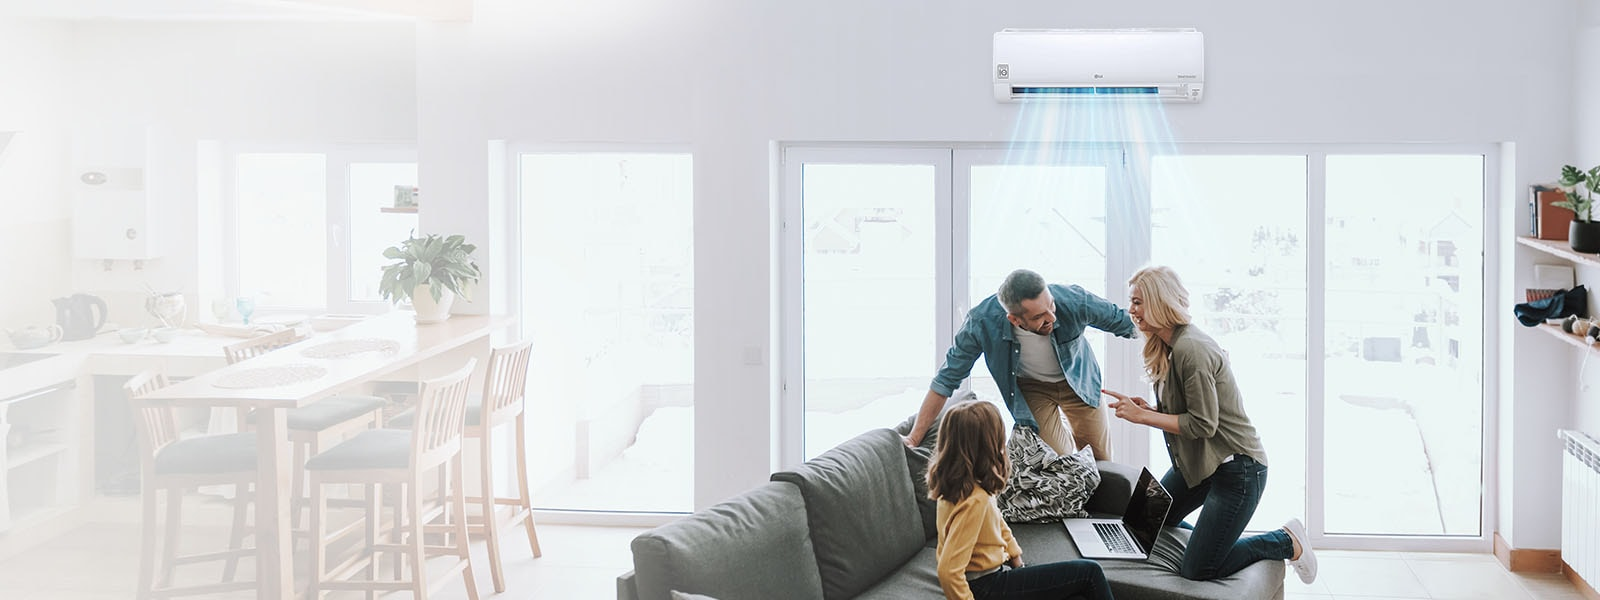 An image of a family having a good time in a living room